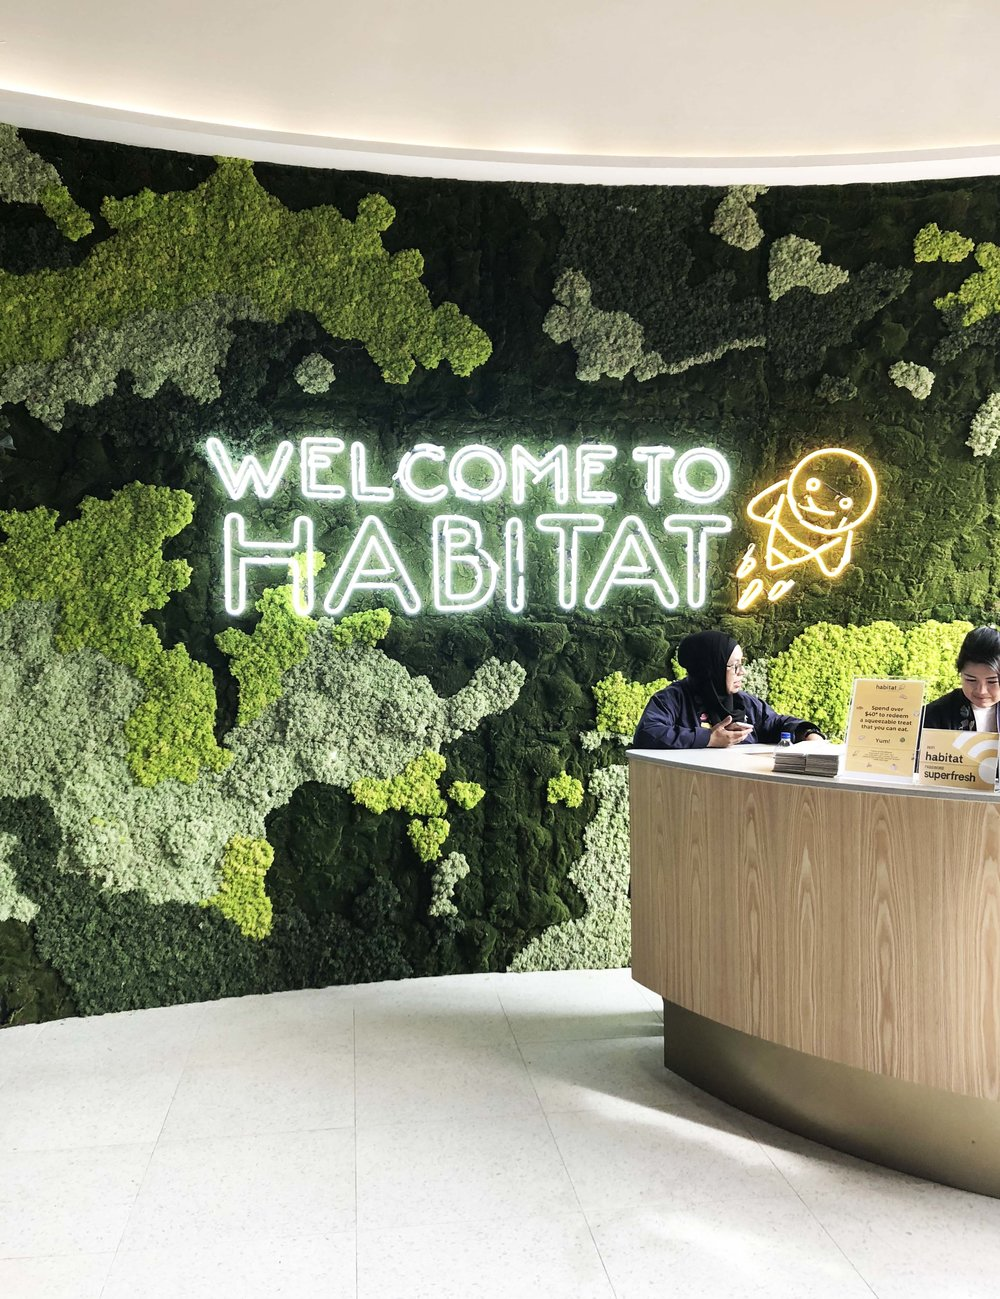 A beautiful welcome at Habitat by Honestbee. Even though most moss walls need little to no maintenance, there are actually lots of benefits to installing them. They increase air quality, reduce noise and stress. Really appreciated the biophilic touch!